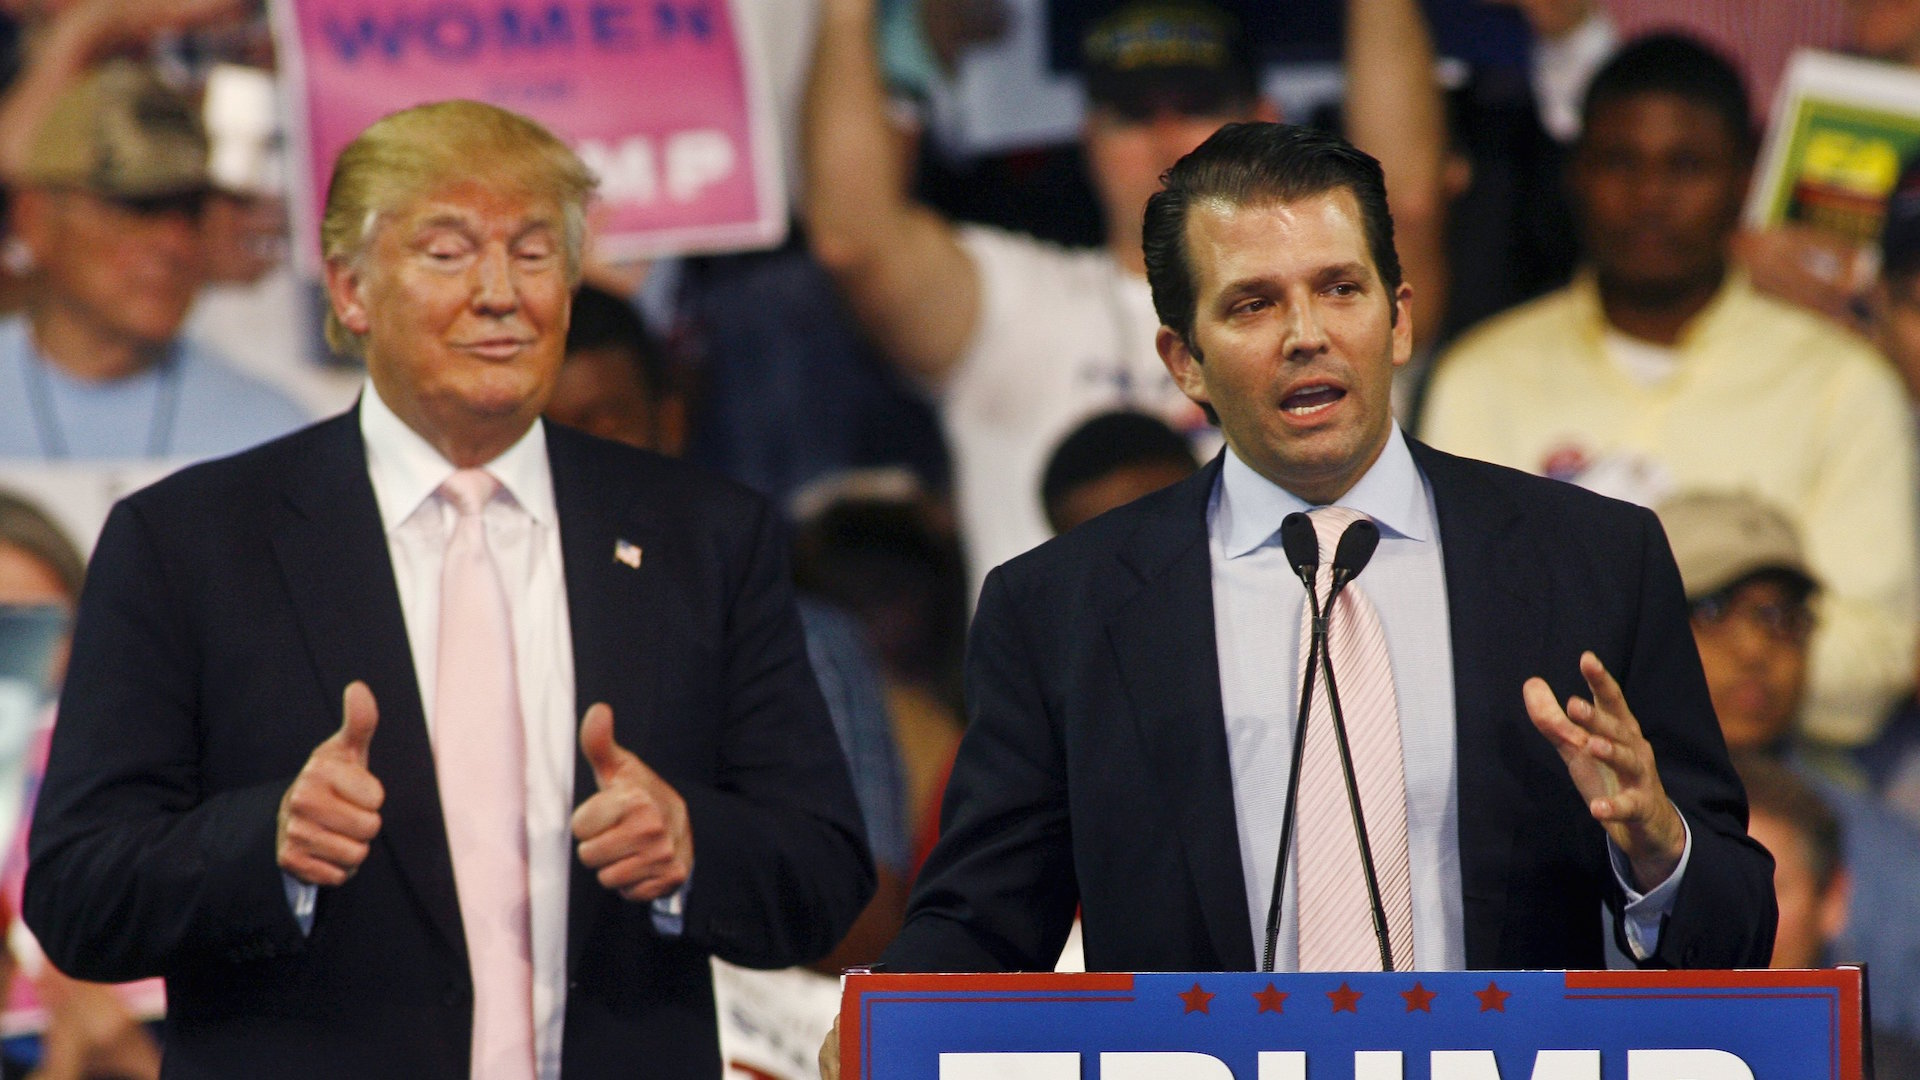 Donald Trump Jr. stumbles out of father's shadow and into the spotlight with white nationalist interview